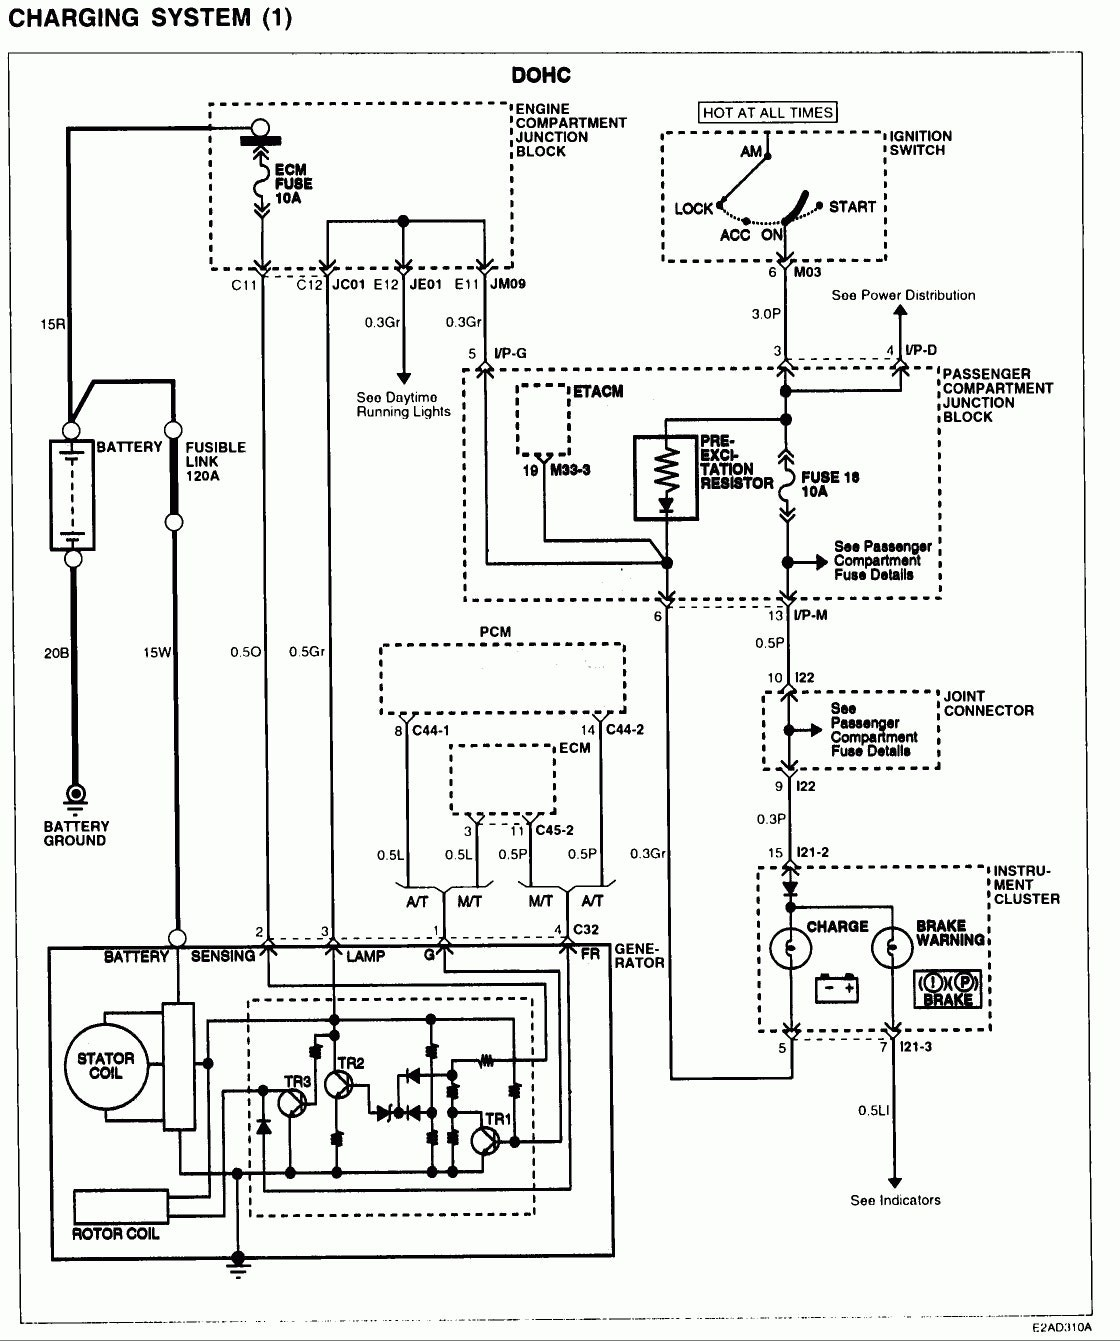 Santa Fe Engine Diagram Of 2009 - Wiring Diagram Work on